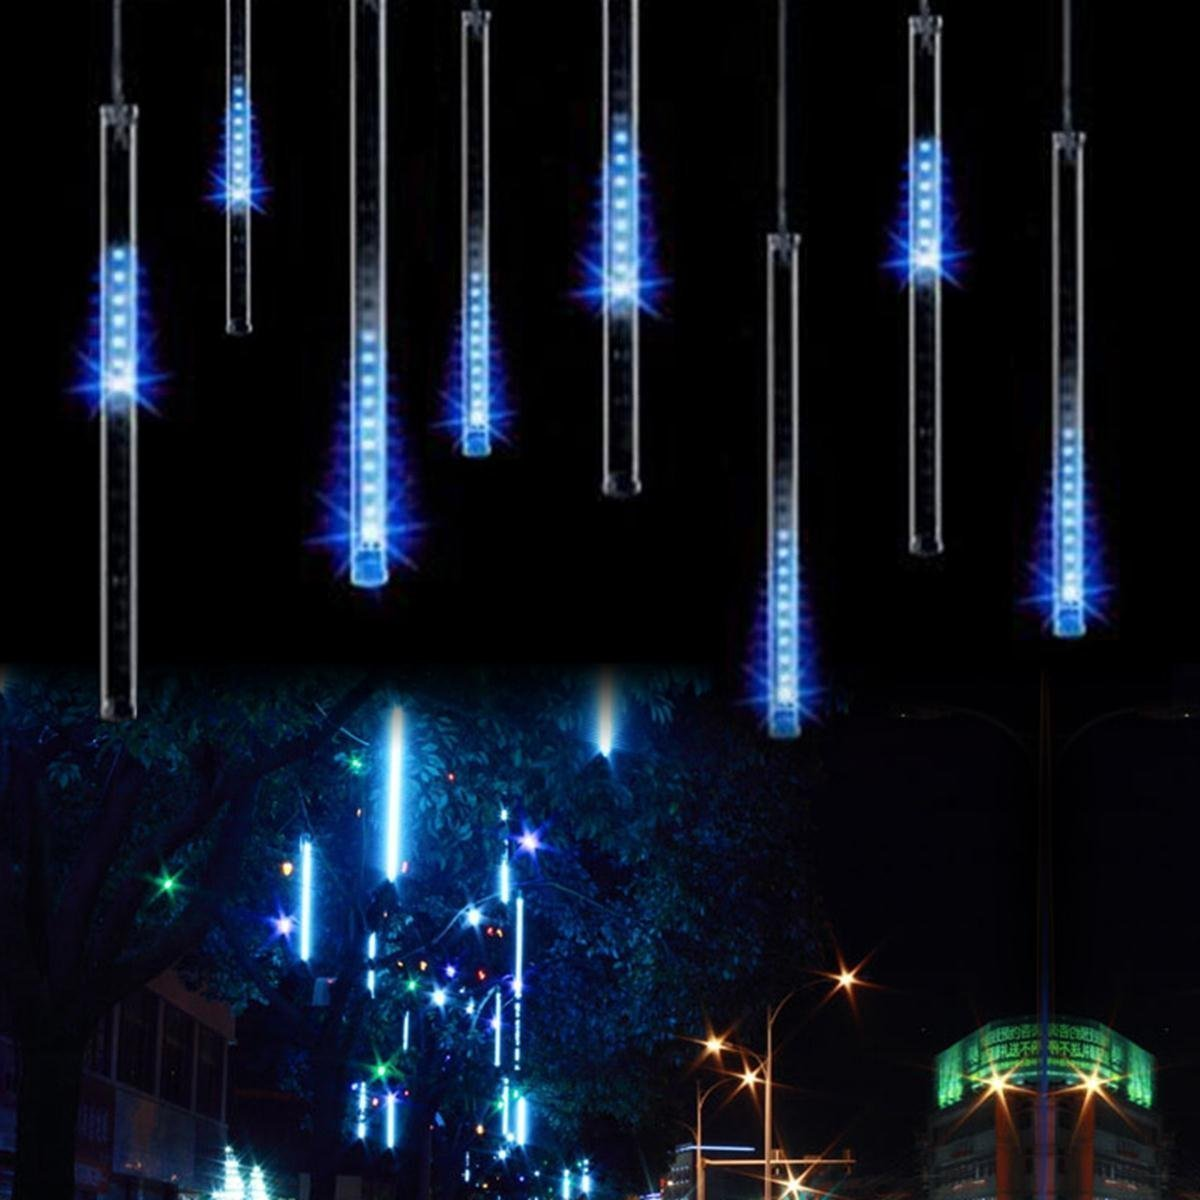 amazoncom omgai led meteor shower rain lights waterproof drop icicle snow falling raindrop 30cm 8 tubes cascading lights for wedding xmas home dcor - Raindrop Christmas Lights